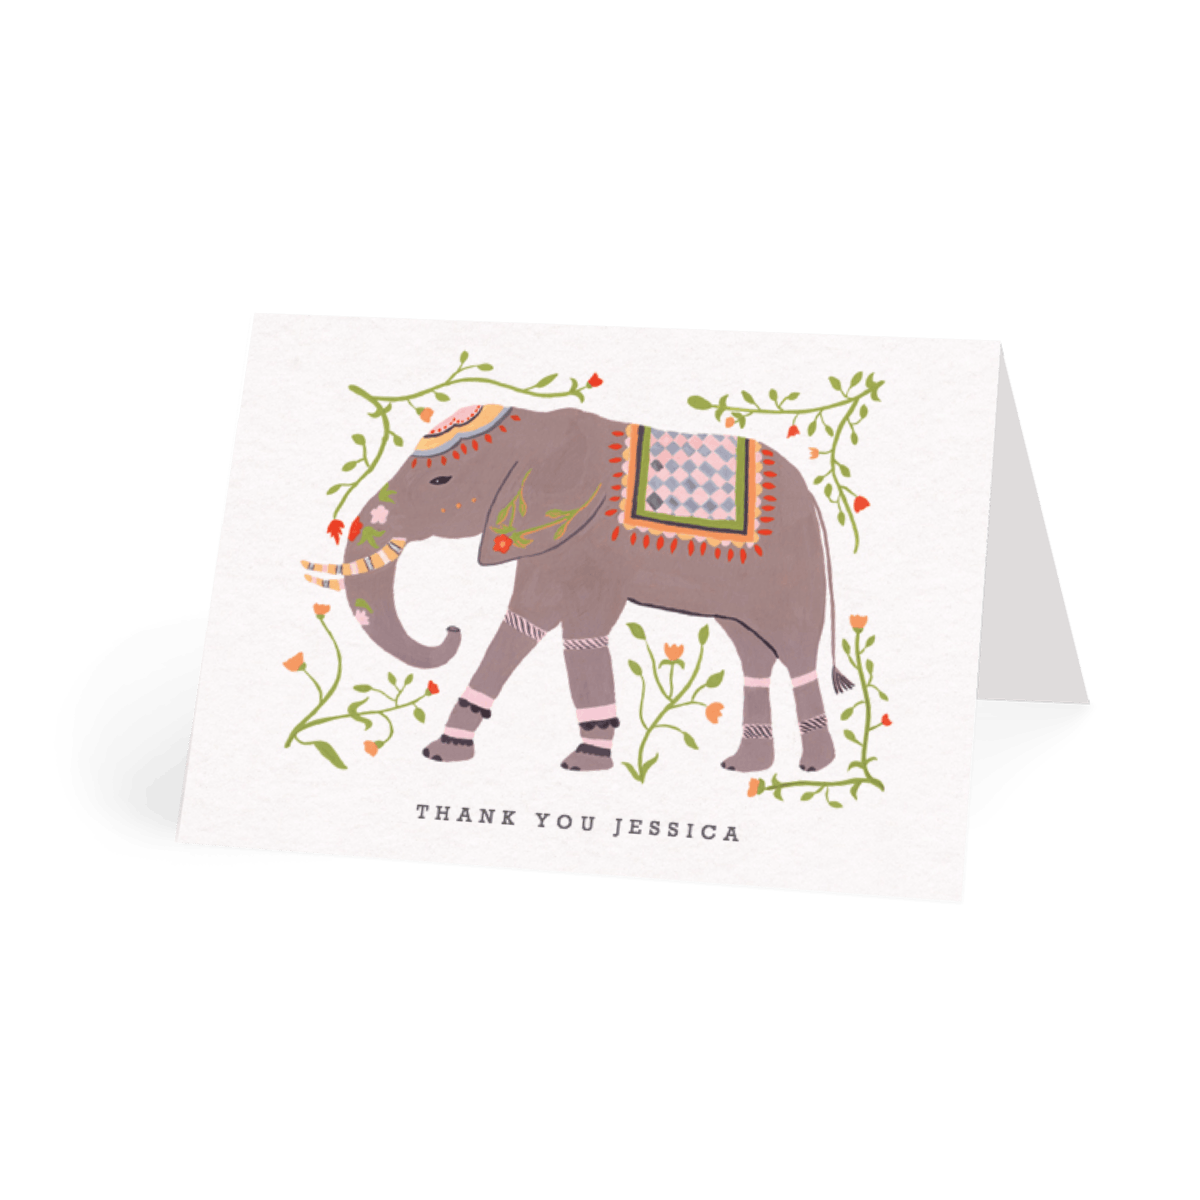 Https%3a%2f%2fwww.papier.com%2fproduct image%2f968%2f14%2feastern elephant 276 front 1453909610.png?ixlib=rb 1.1